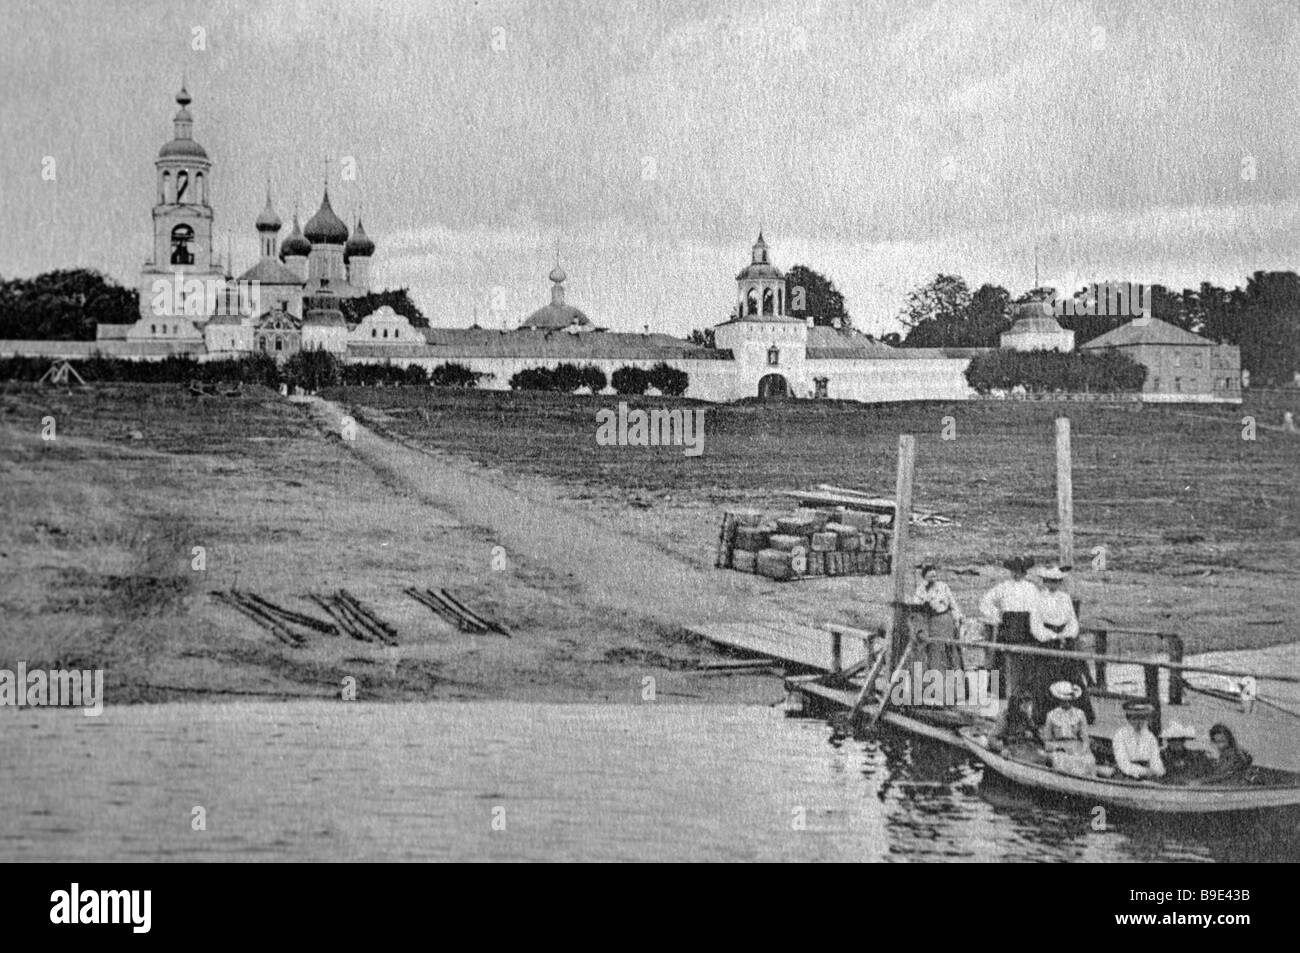 Reproduction of an early twentieth century postal stamp showing the Tolgosky Monastery in Yaroslavl - Stock Image